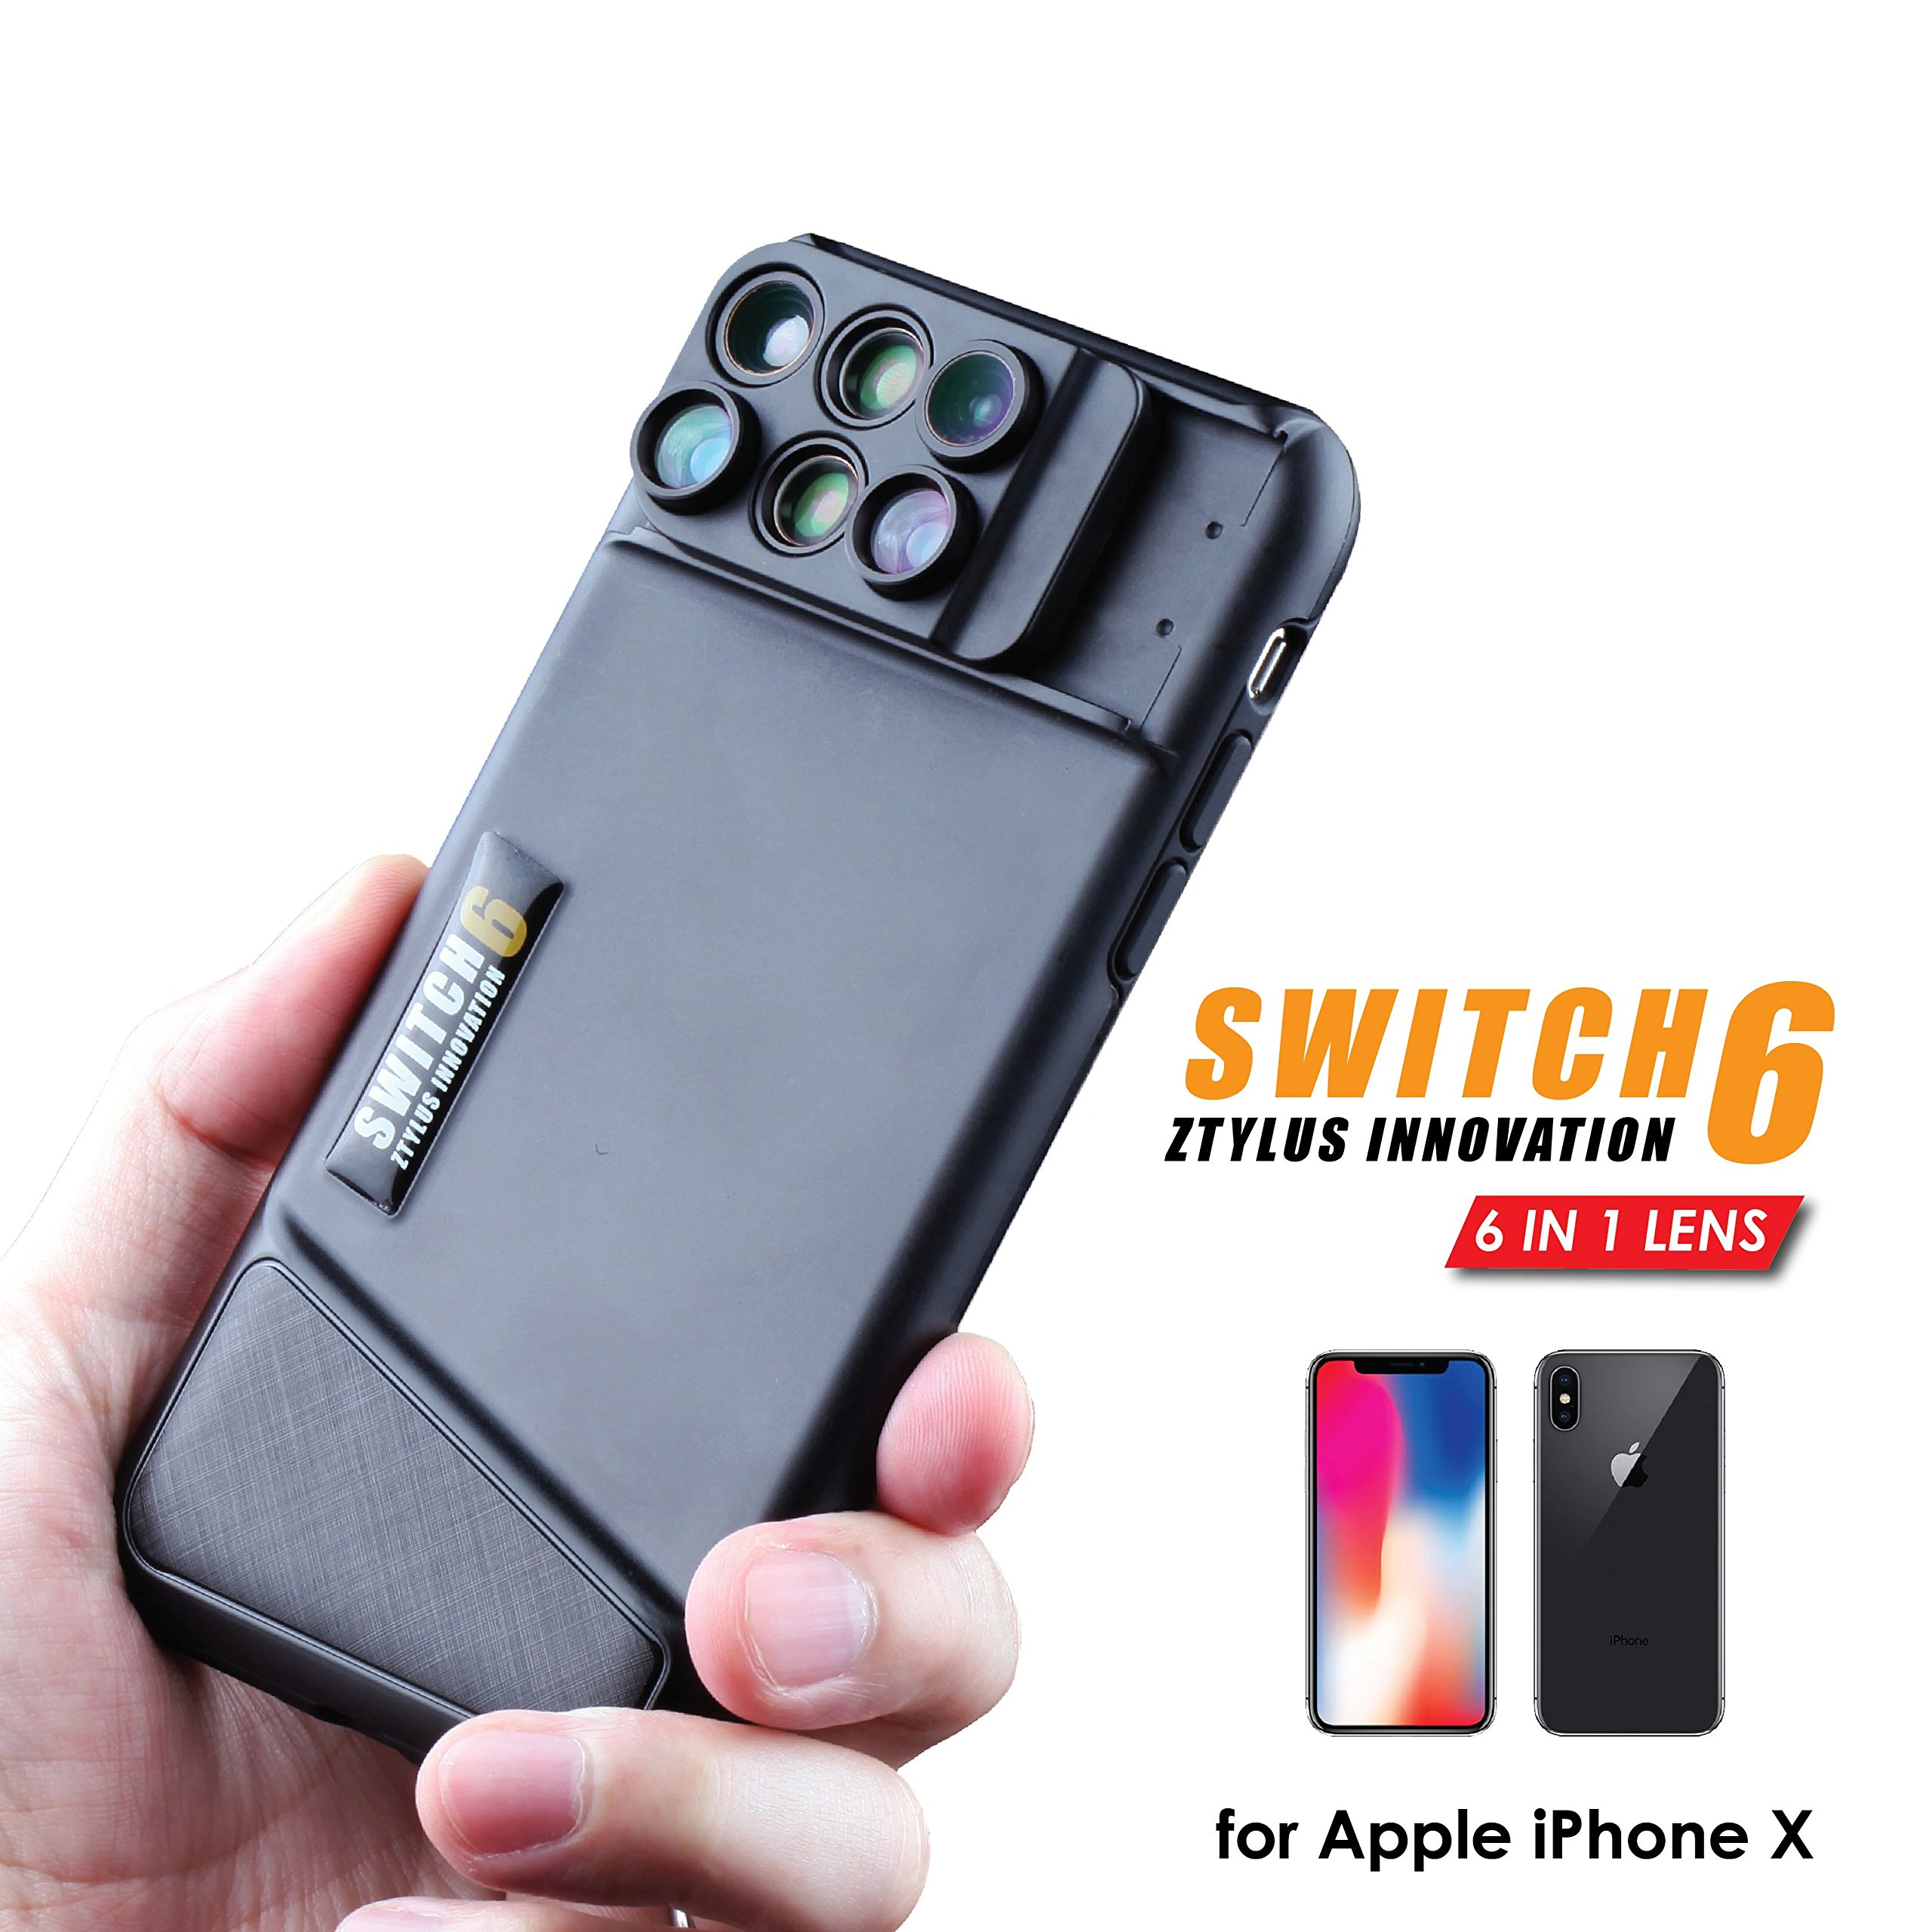 Ztylus Switch 6 for Apple iPhone X: 6 in 1 Dual Optics Lens System (Fisheye, Telephoto, Wide-angle, Macro and Super Macro), Double Layer Protection (Black)